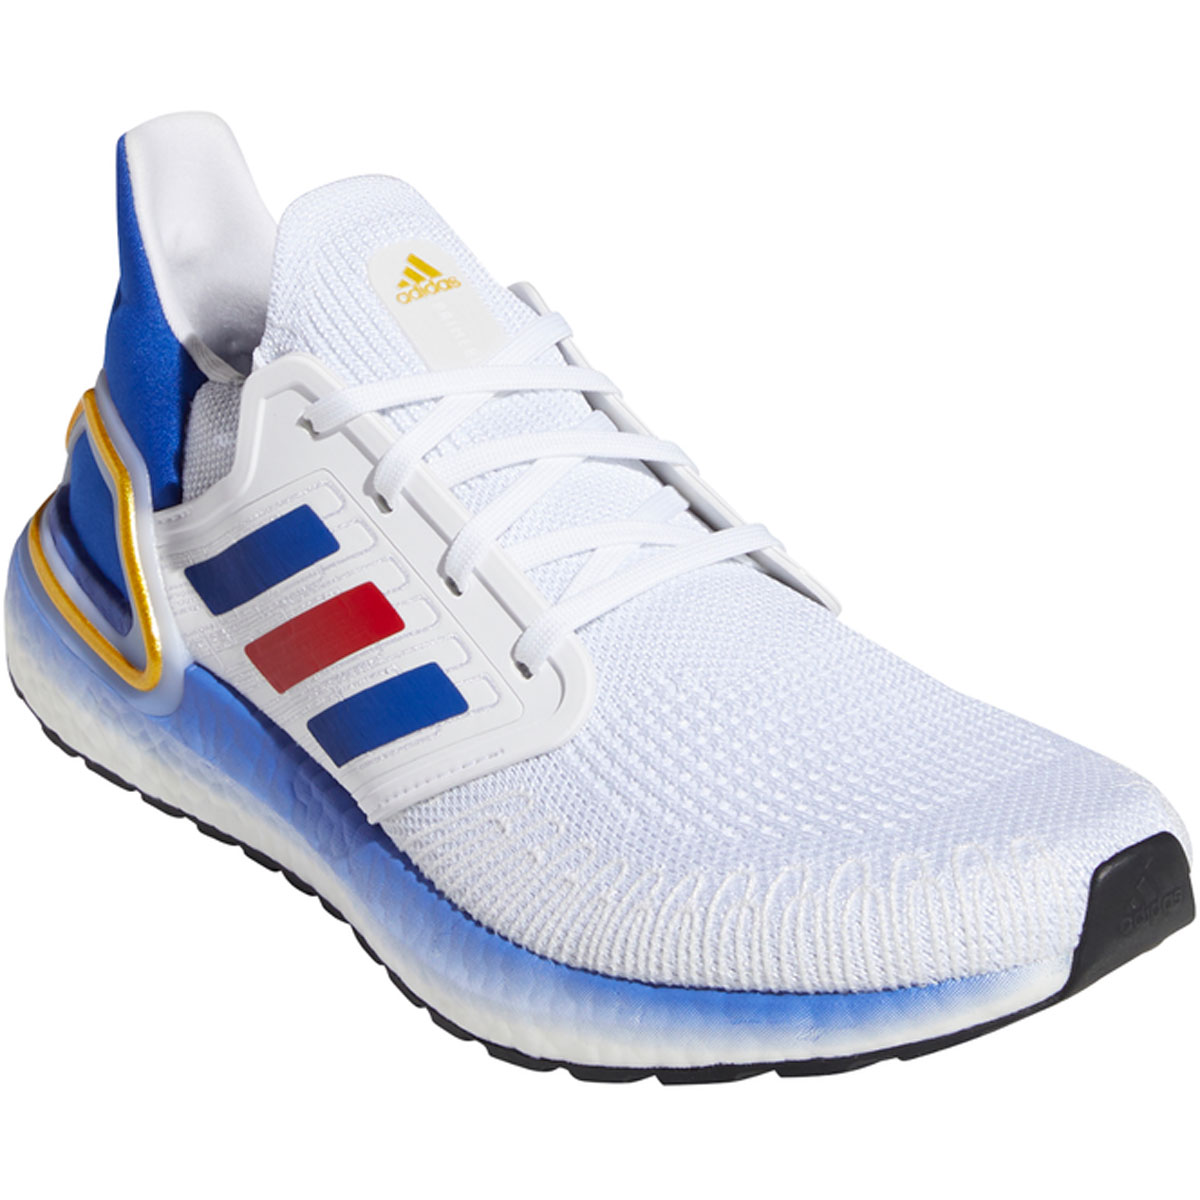 Men's Adidas Ultraboost 20 Running Shoe - Color: White/Team Usa - Size: 6.5 - Width: Regular, White/Team USA, large, image 3